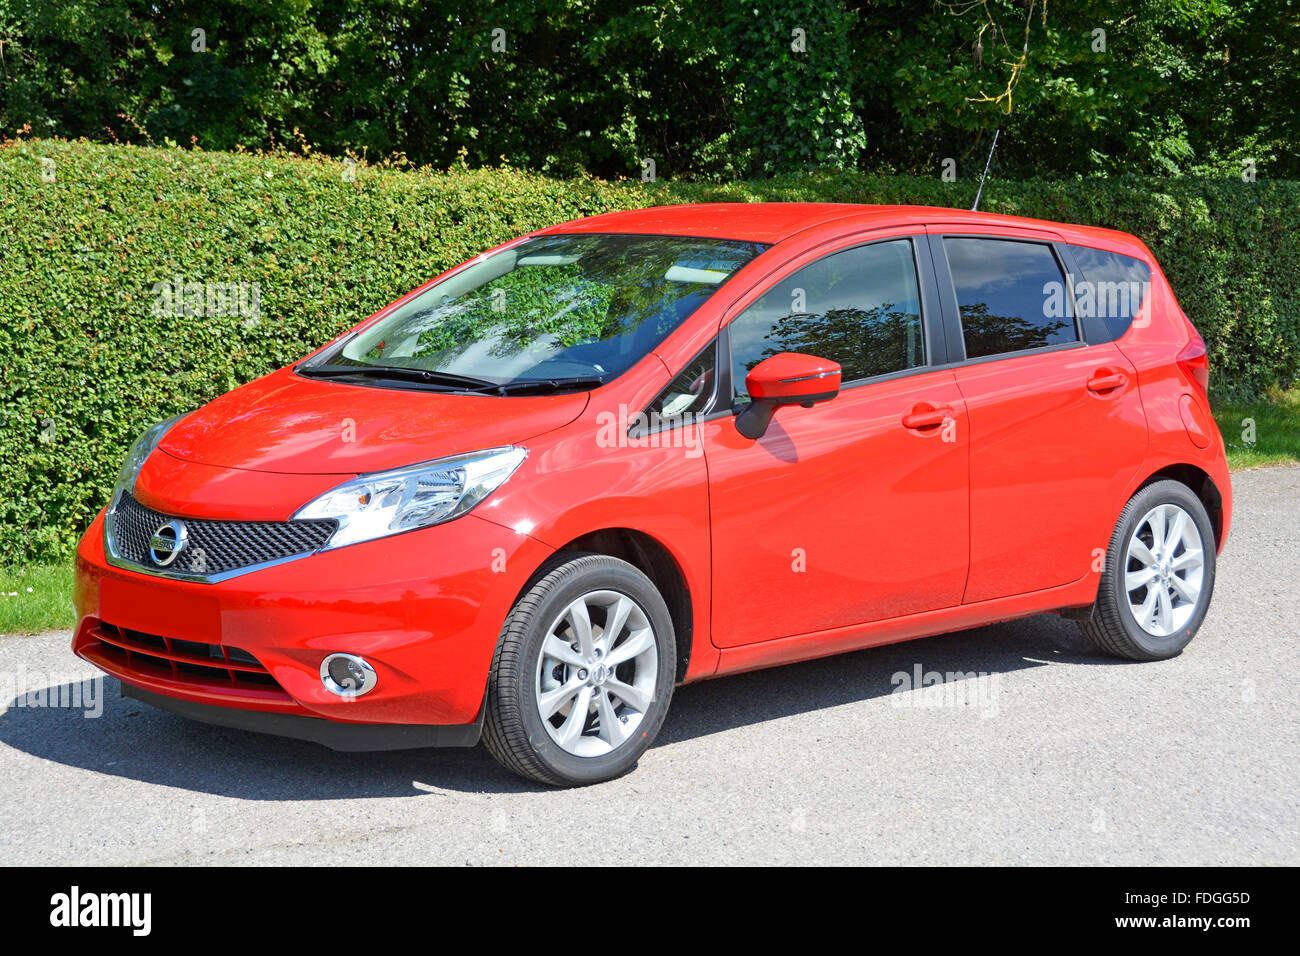 Nissan Note Tekna super mini hatchback car with a 1.2 litre petrol engine (obscured numberplate) - Stock Image